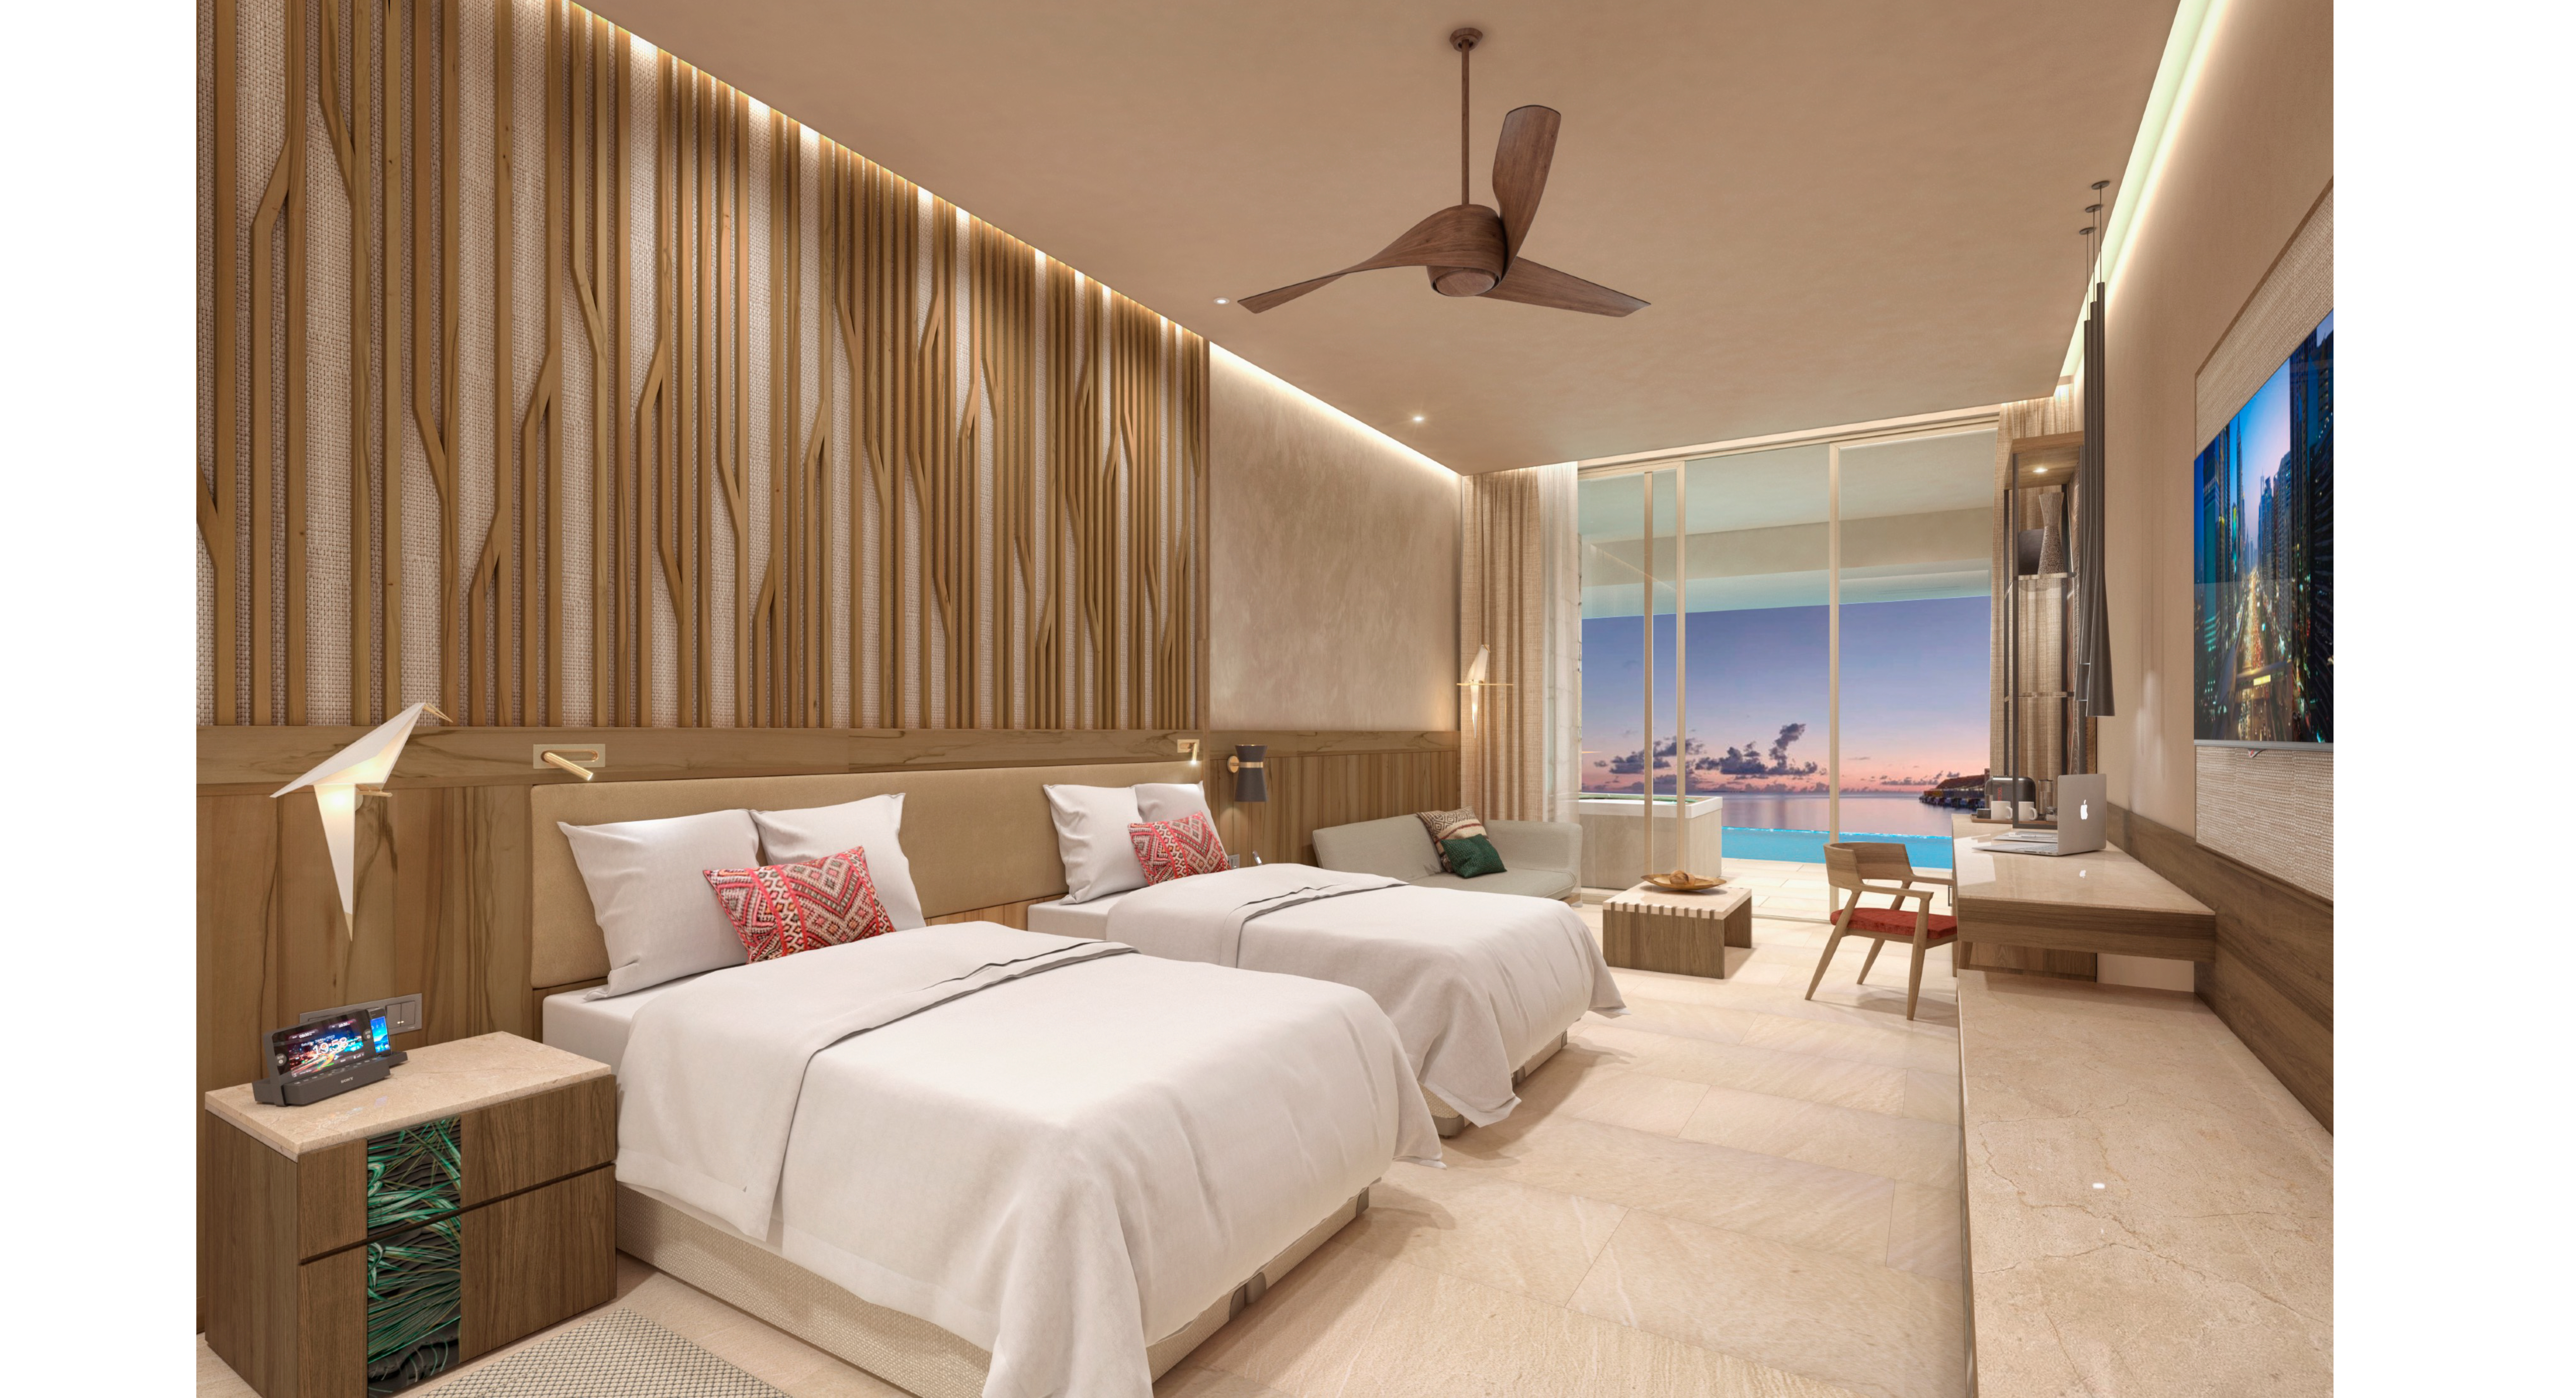 Showing slide 1 of 4 in image gallery showcasing Junior Suite Ocean Front Premium Level